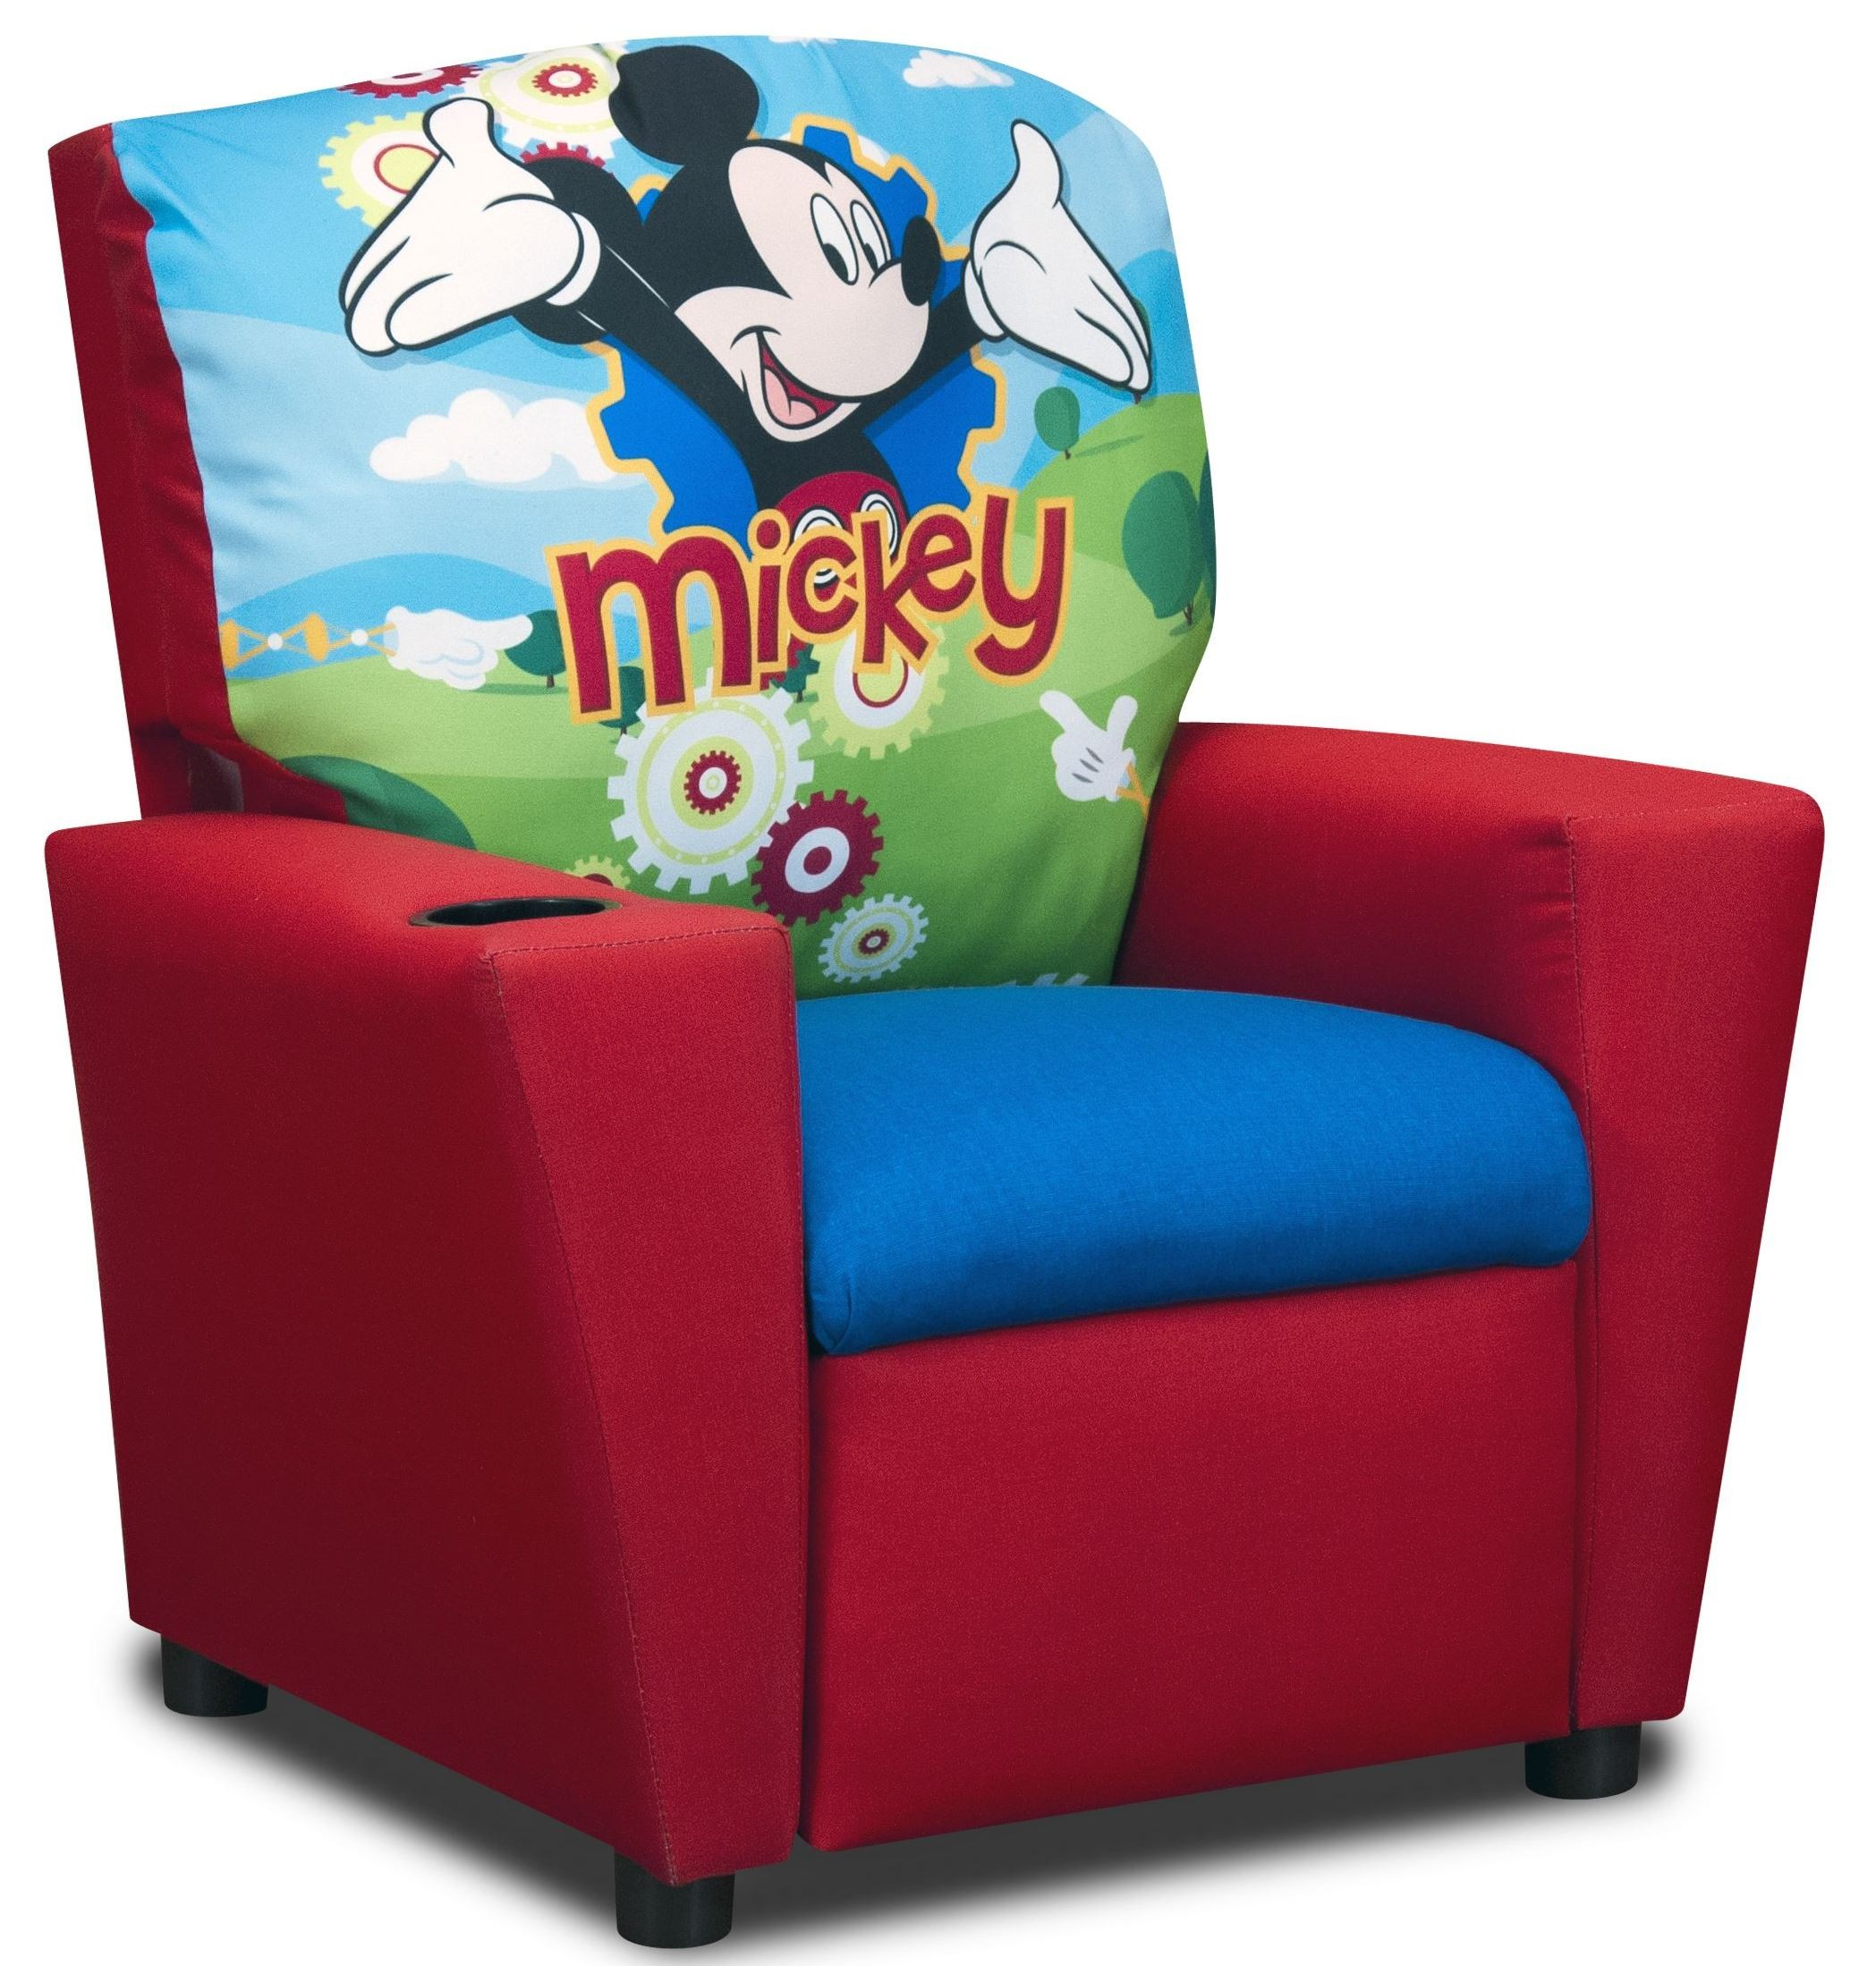 minnie mouse upholstered chair canada computer floor mat kidz world recliner furniture youth mossy oak